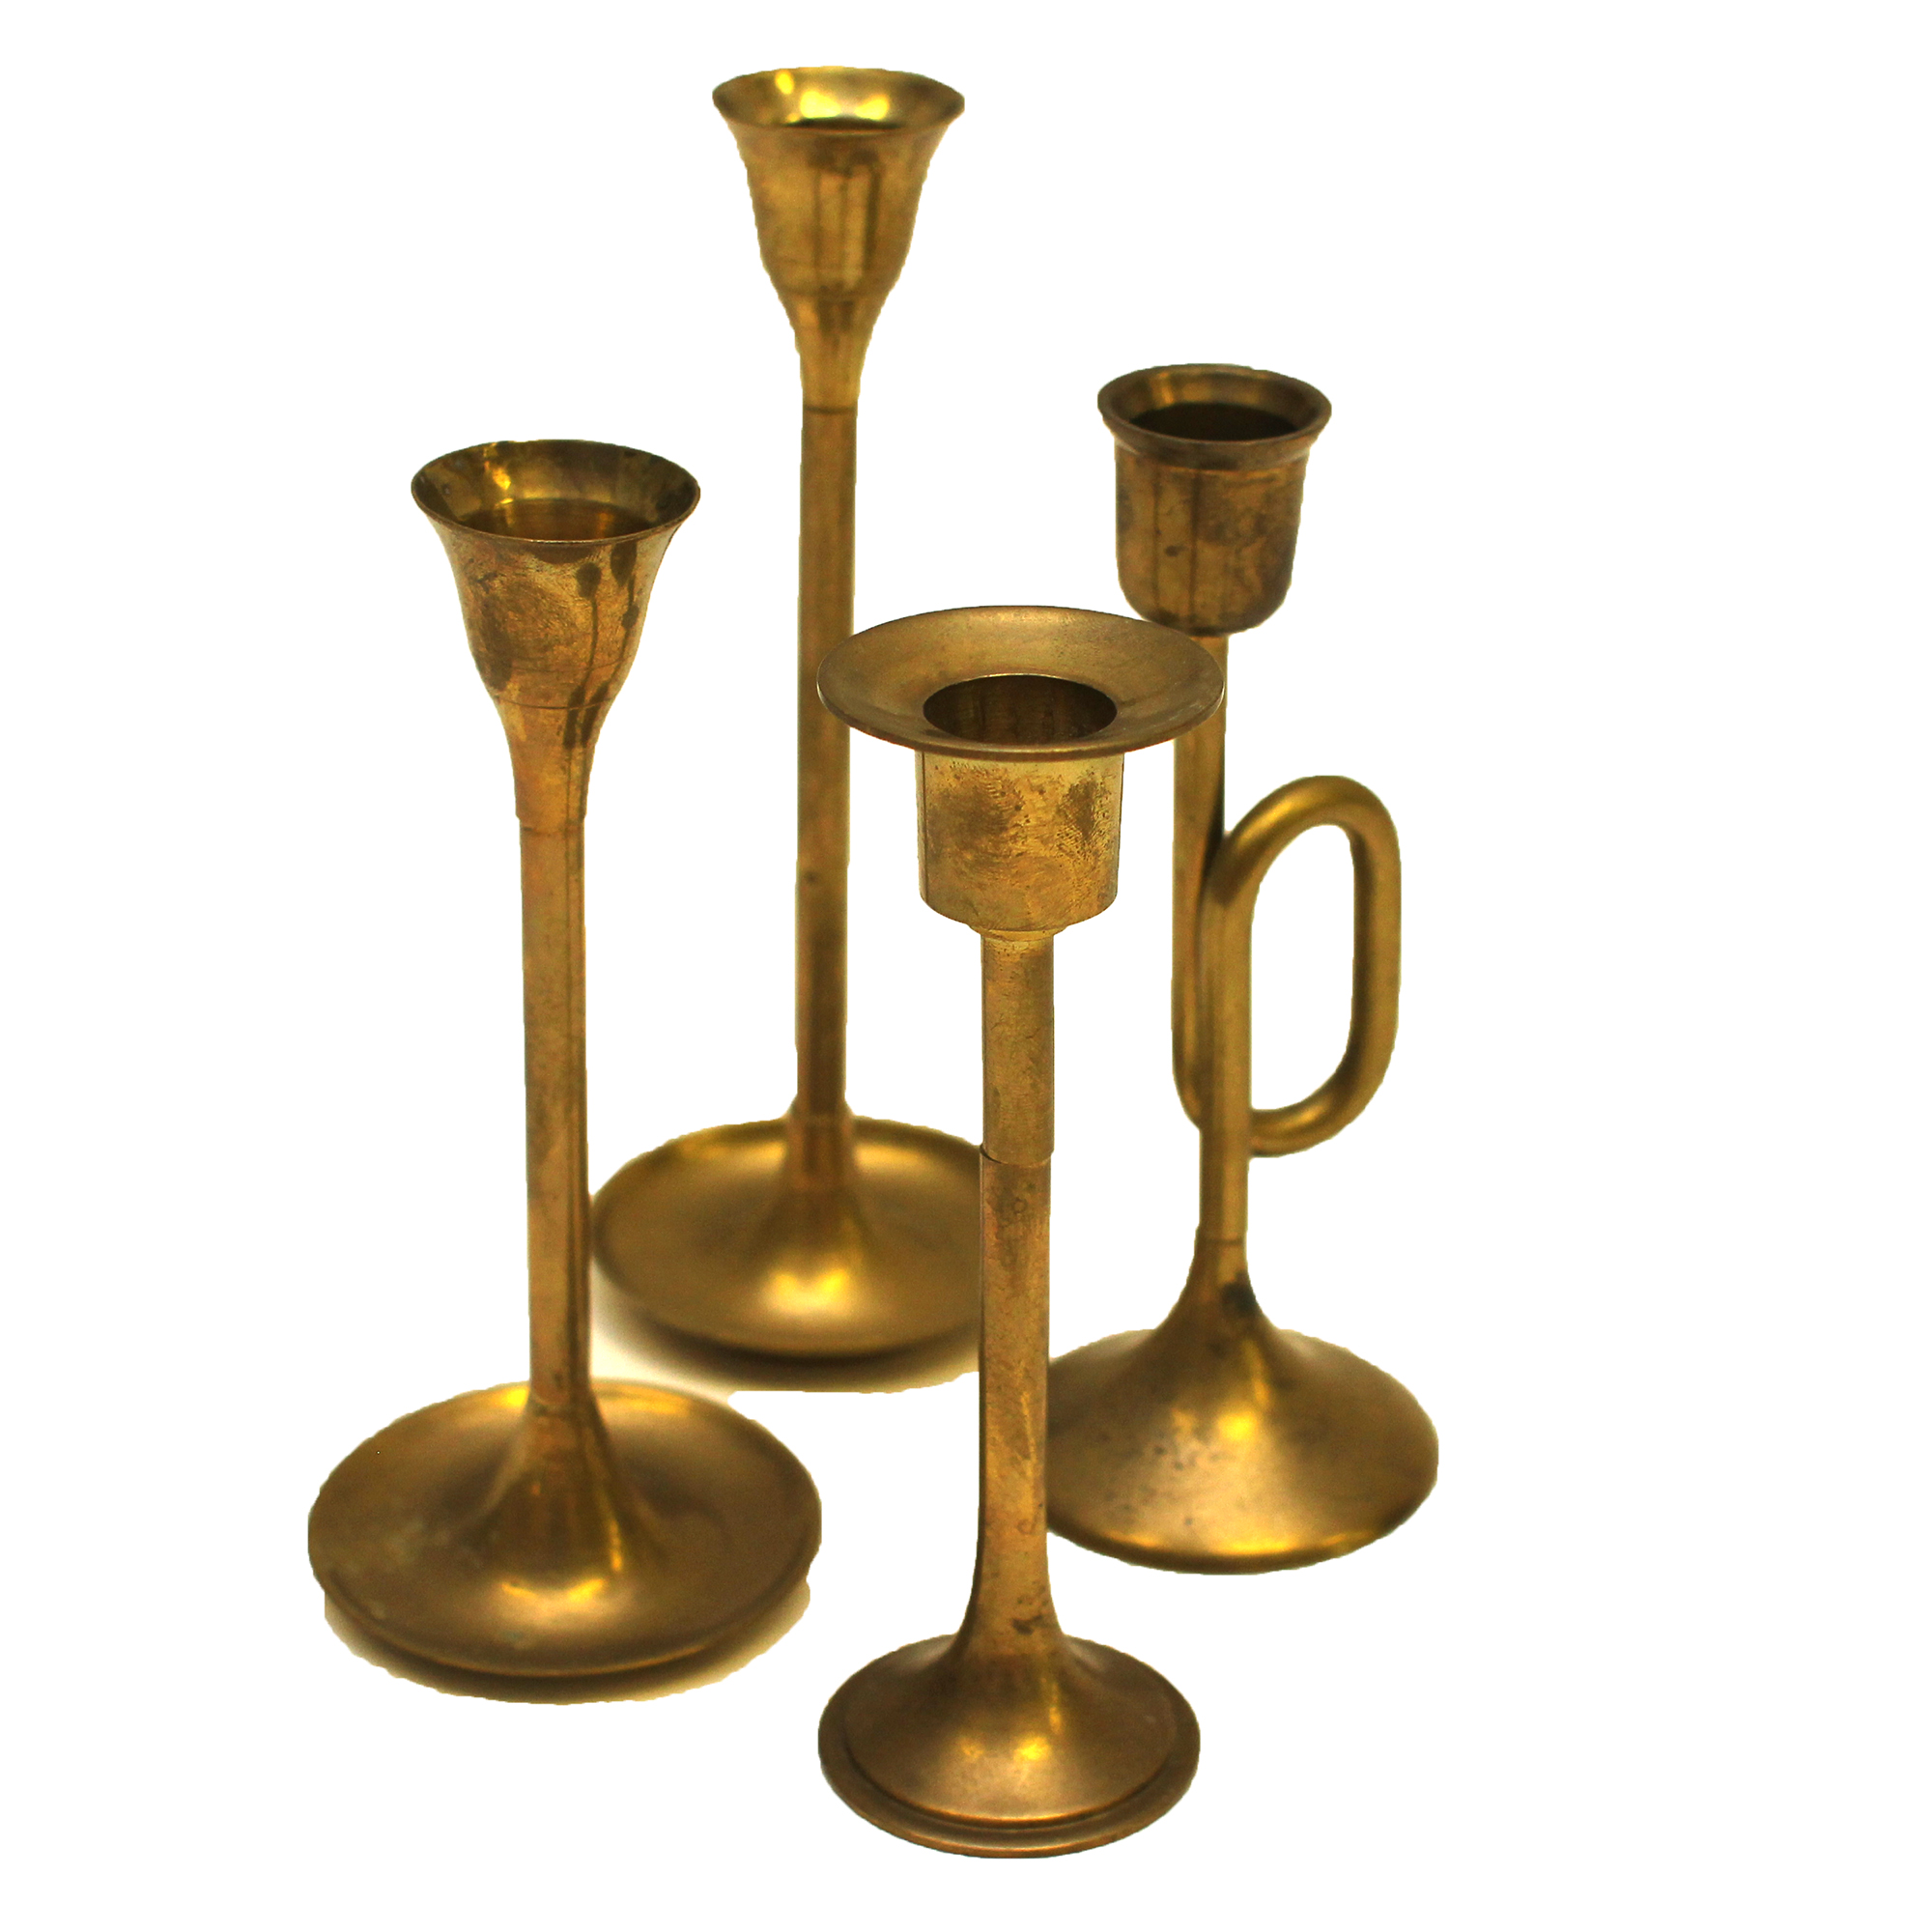 Vintage Brass Candle Holders - Set of 4 | Chairish